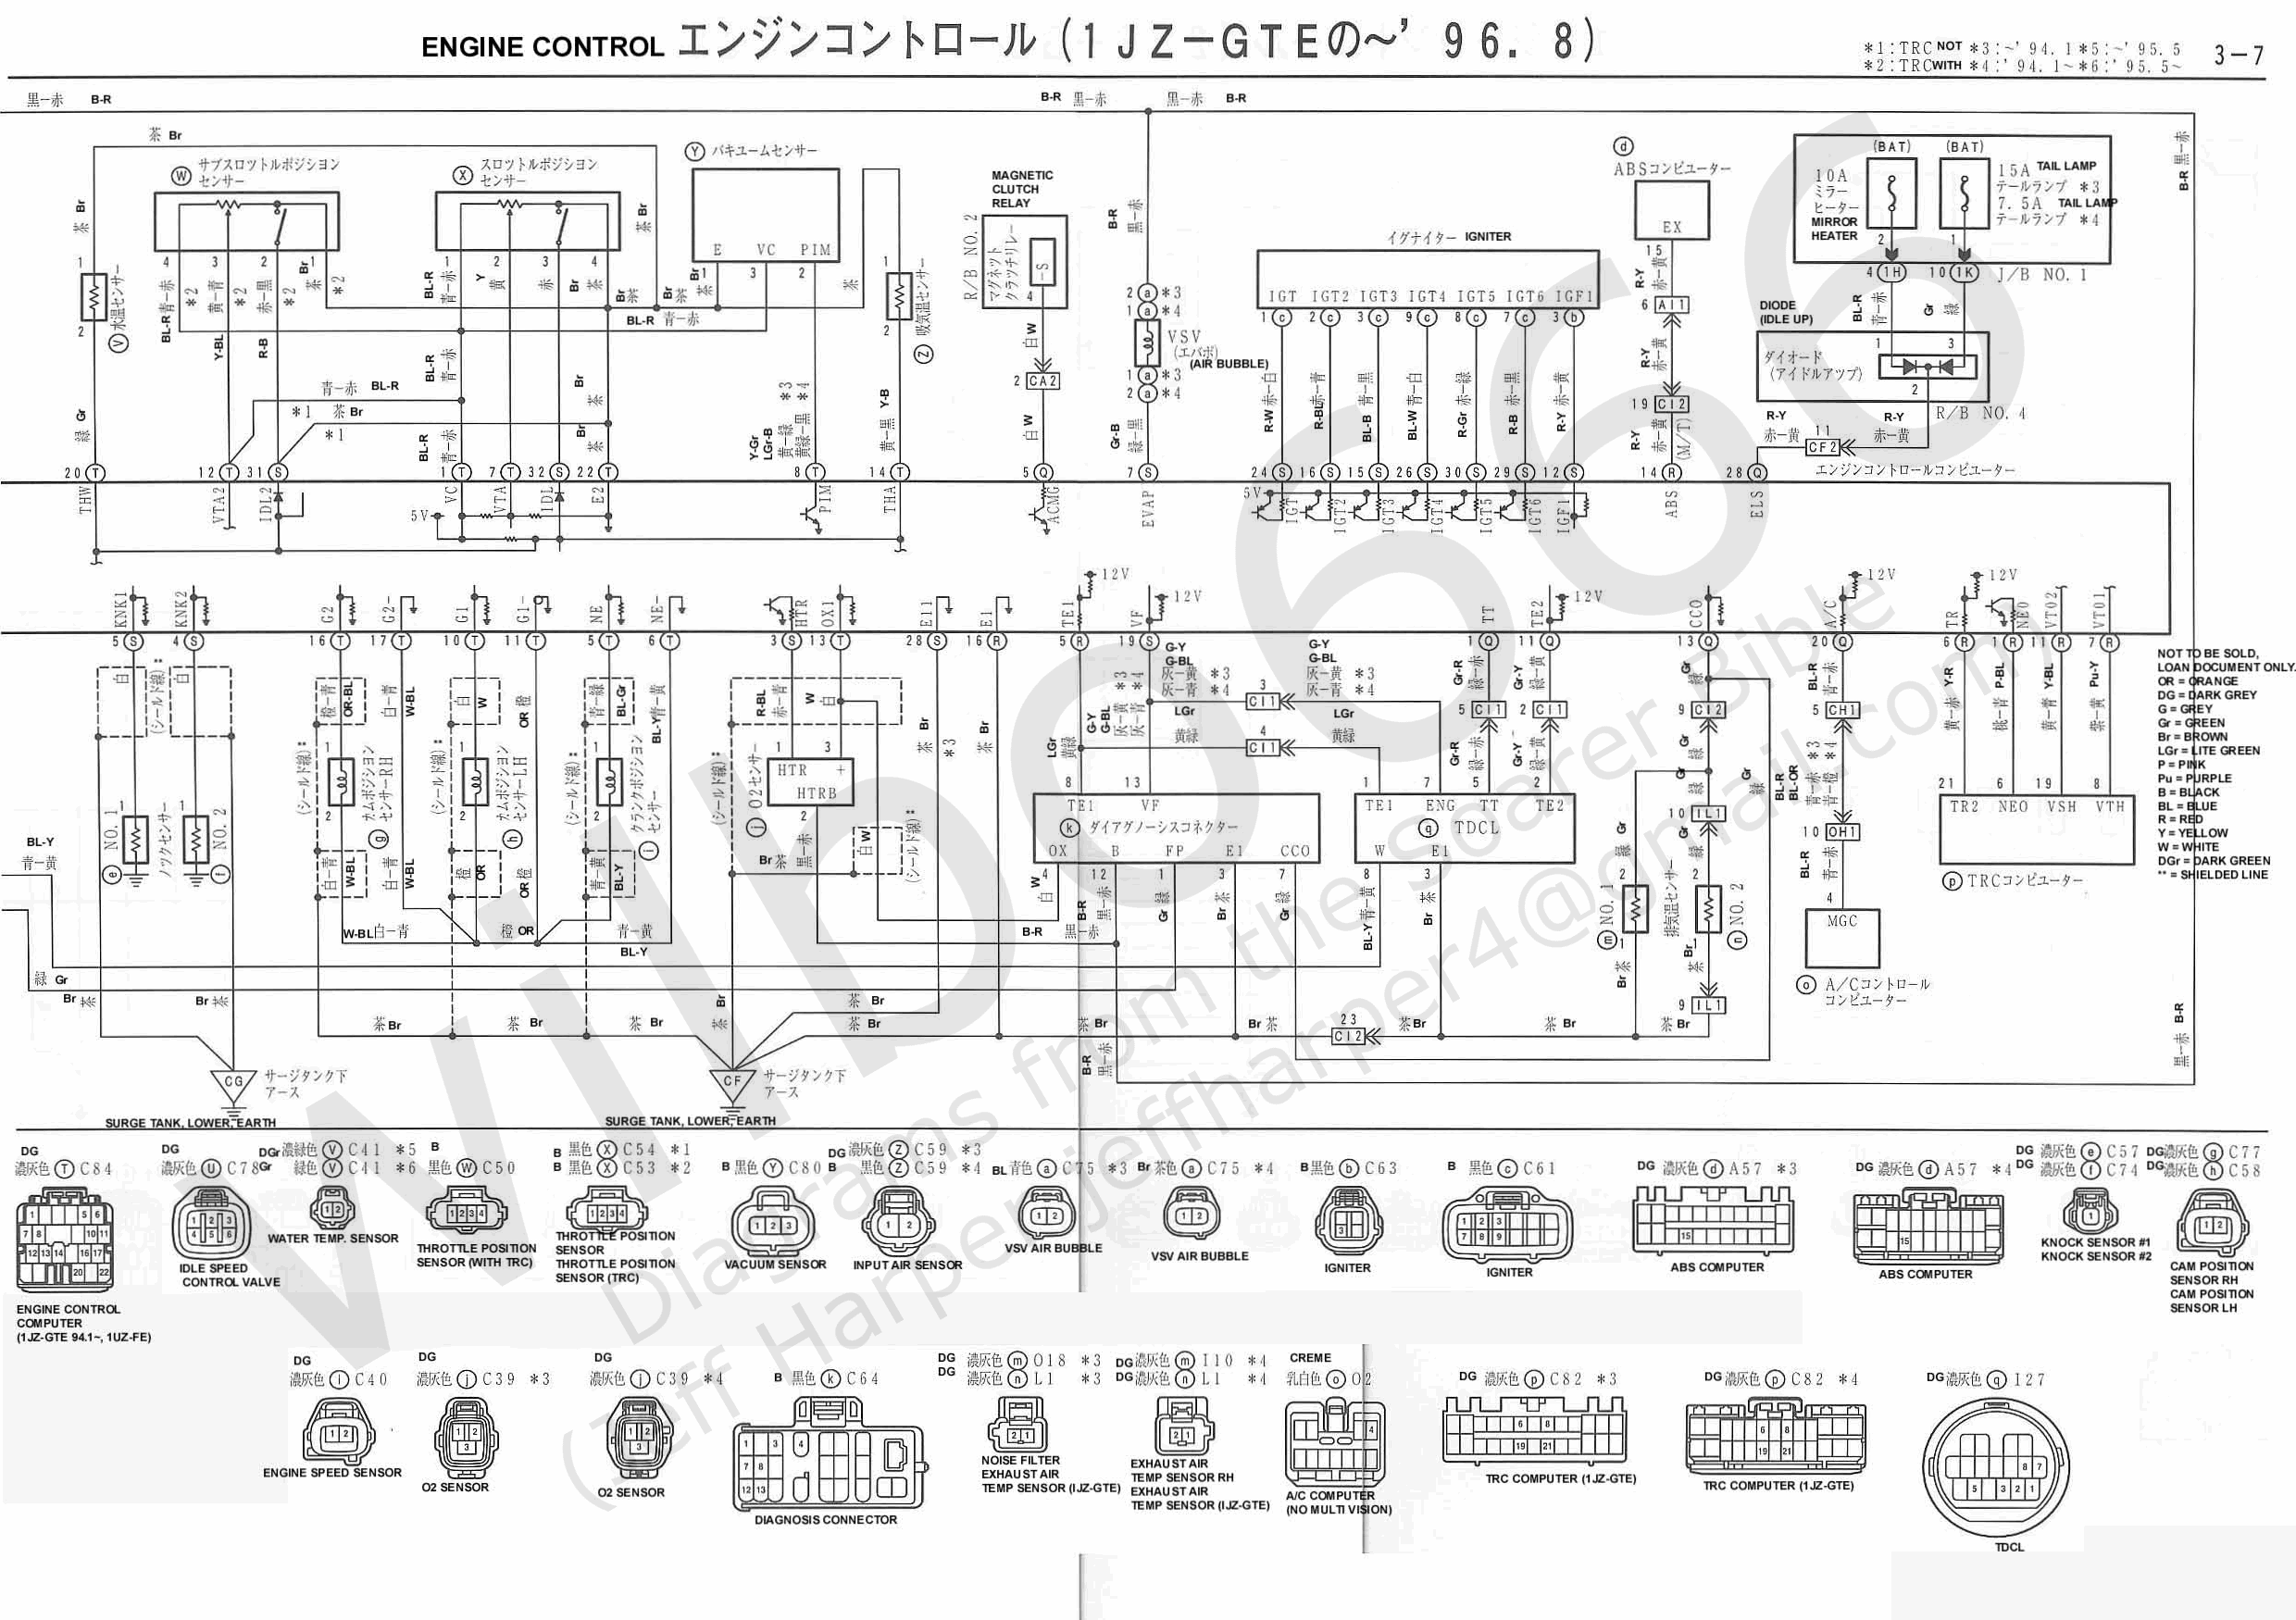 xZZ3x Electrical Wiring Diagram 6737105 3 7 1jz wiring diagram light switch wiring diagram \u2022 free wiring  at nearapp.co